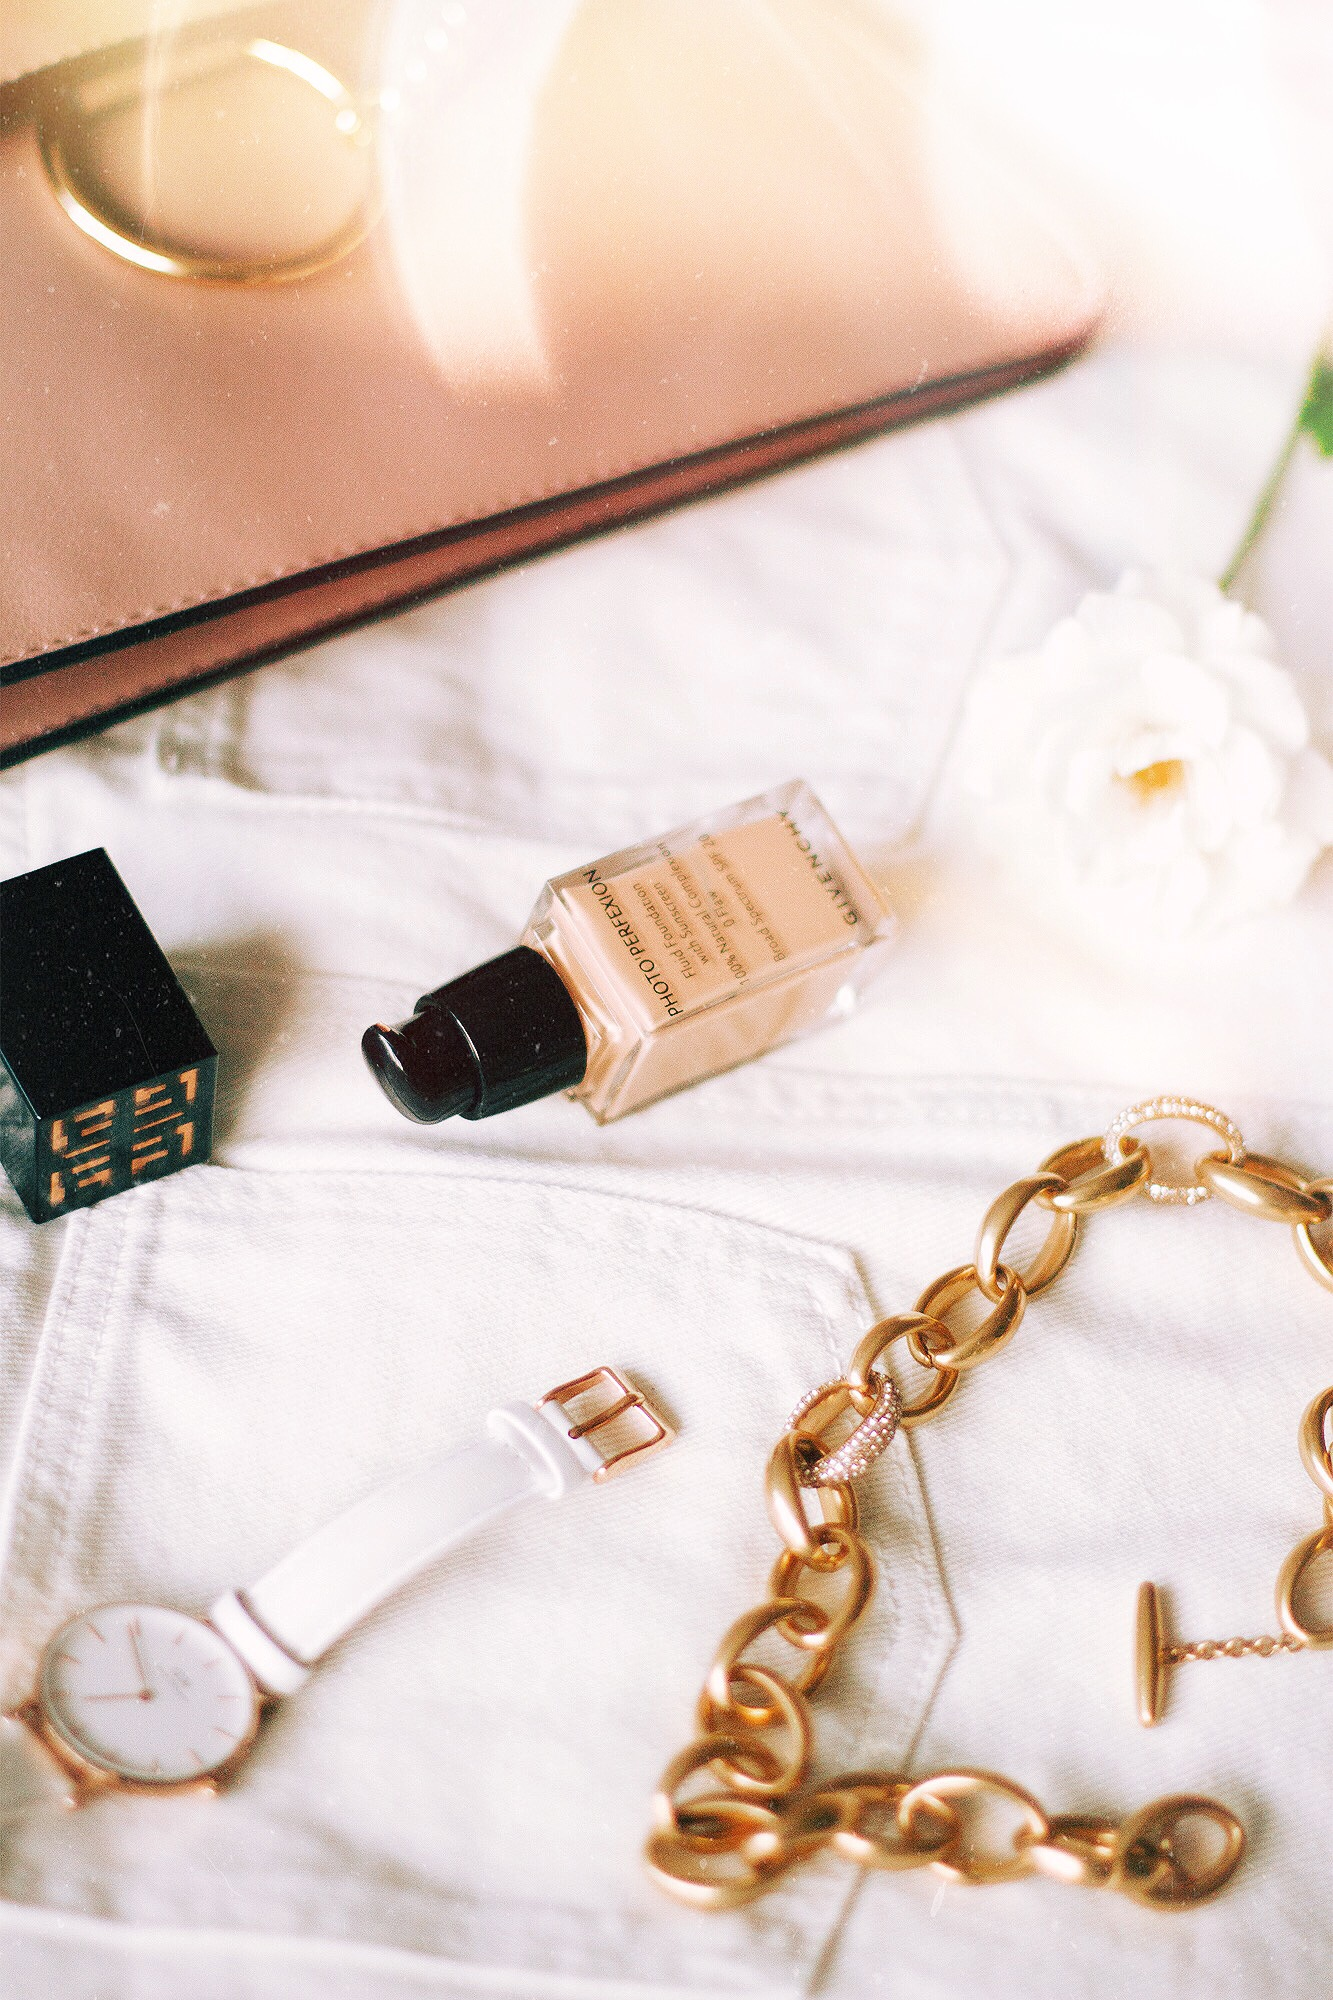 Givenchy Foundation Photo Perfexion x Kate Caviar